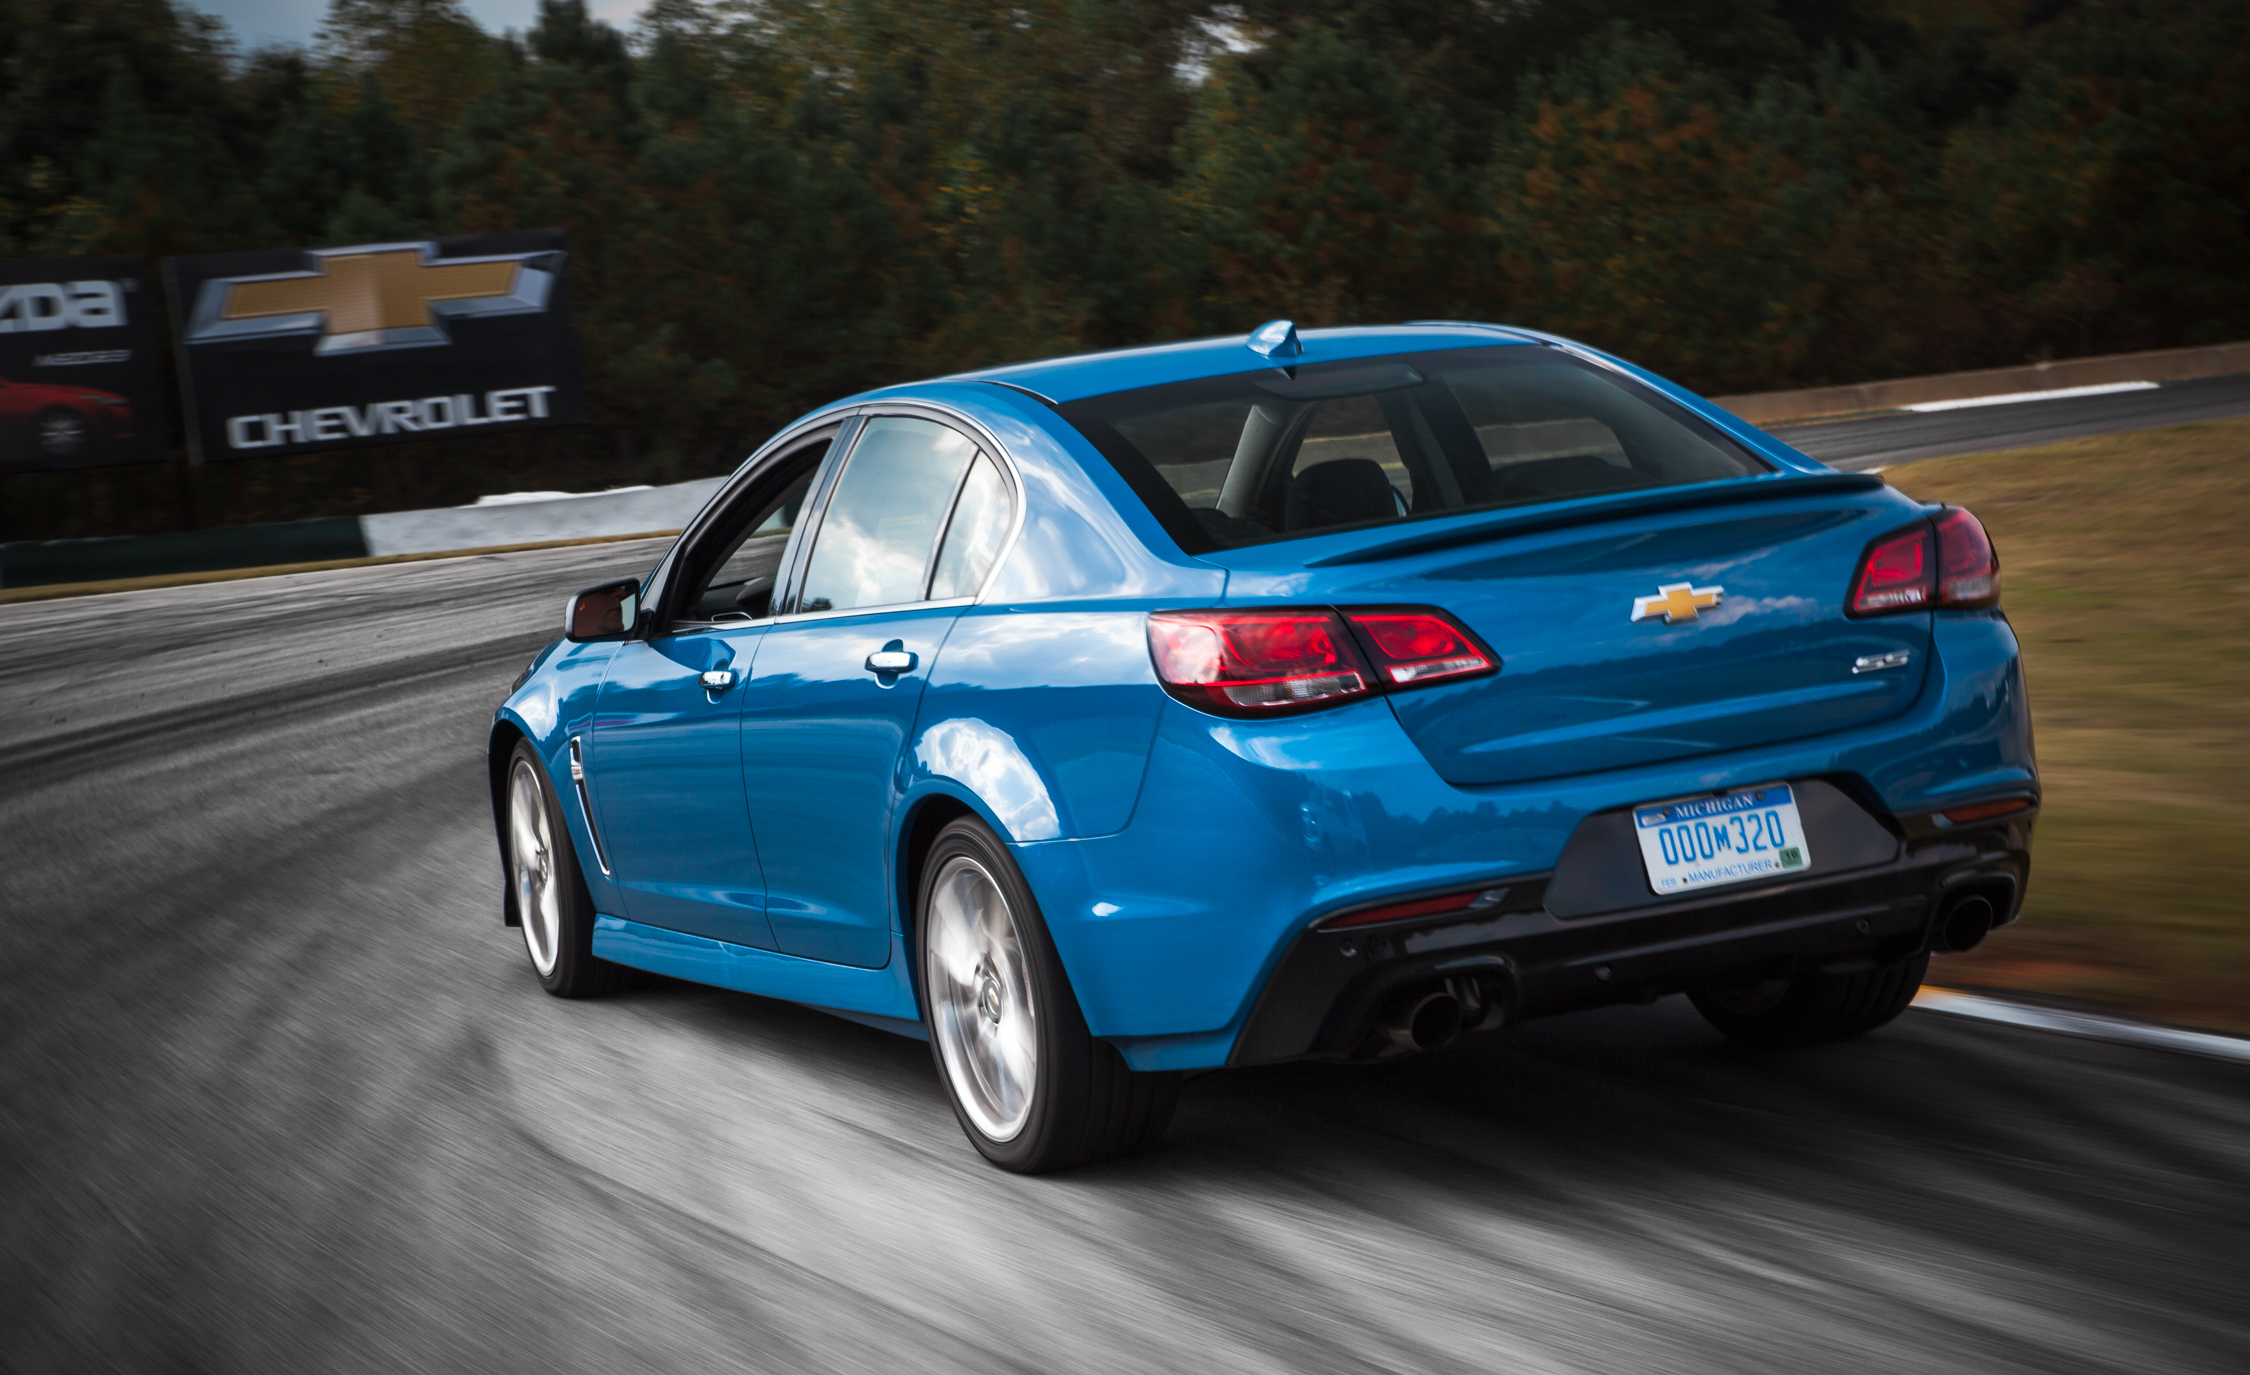 2015 Chevrolet SS (View 23 of 27)